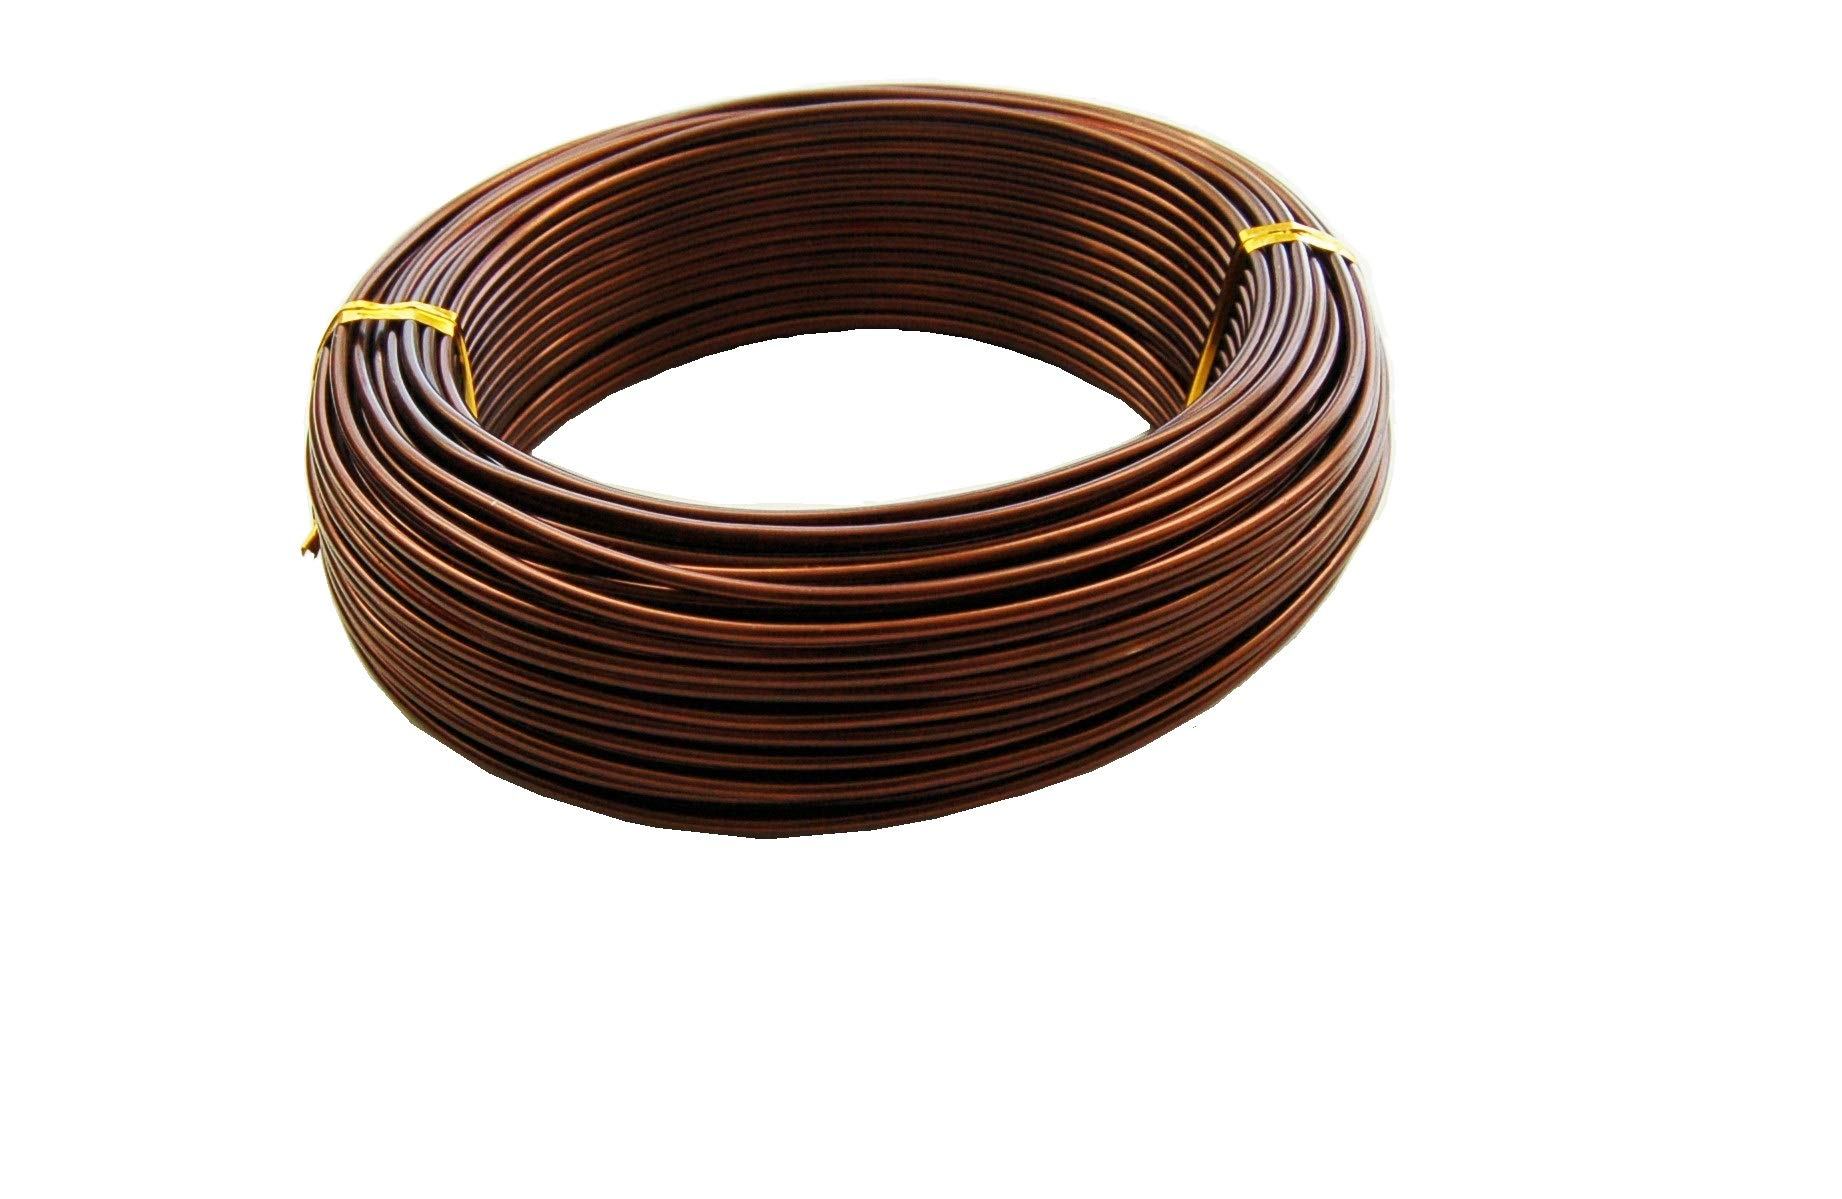 Best Rated In Bonsai Training Wire Helpful Customer Reviews Ficus Tree Wiring U Nitt Wires 250 Gram Roll 20mm